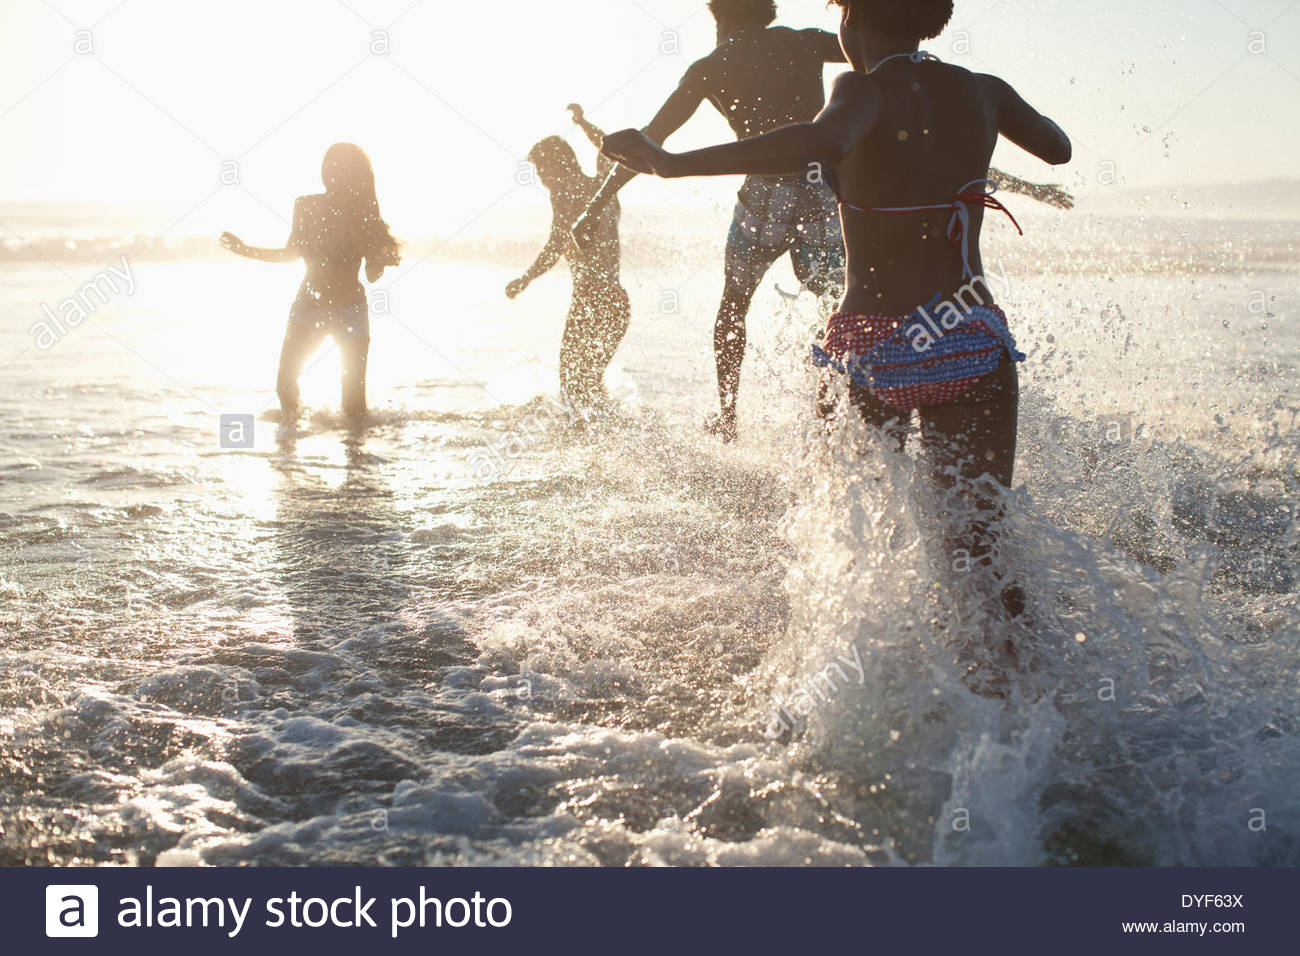 Friends playing in waves on beach - Stock Image